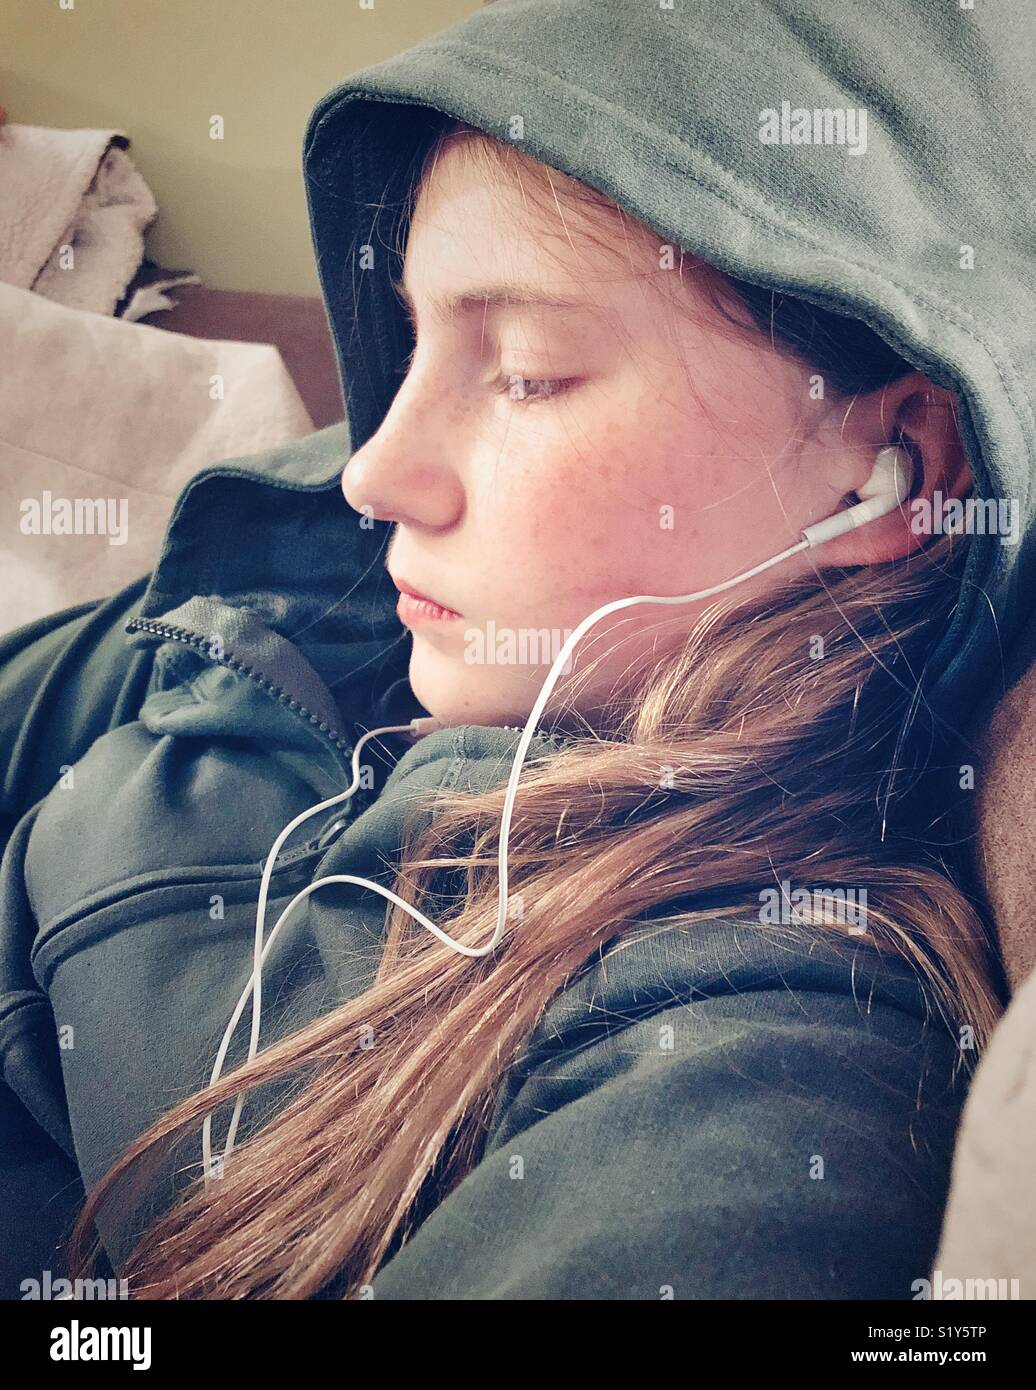 Profile image of young teen girl with long blonde hair looking down wearing white earbuds and a green hood - Stock Image